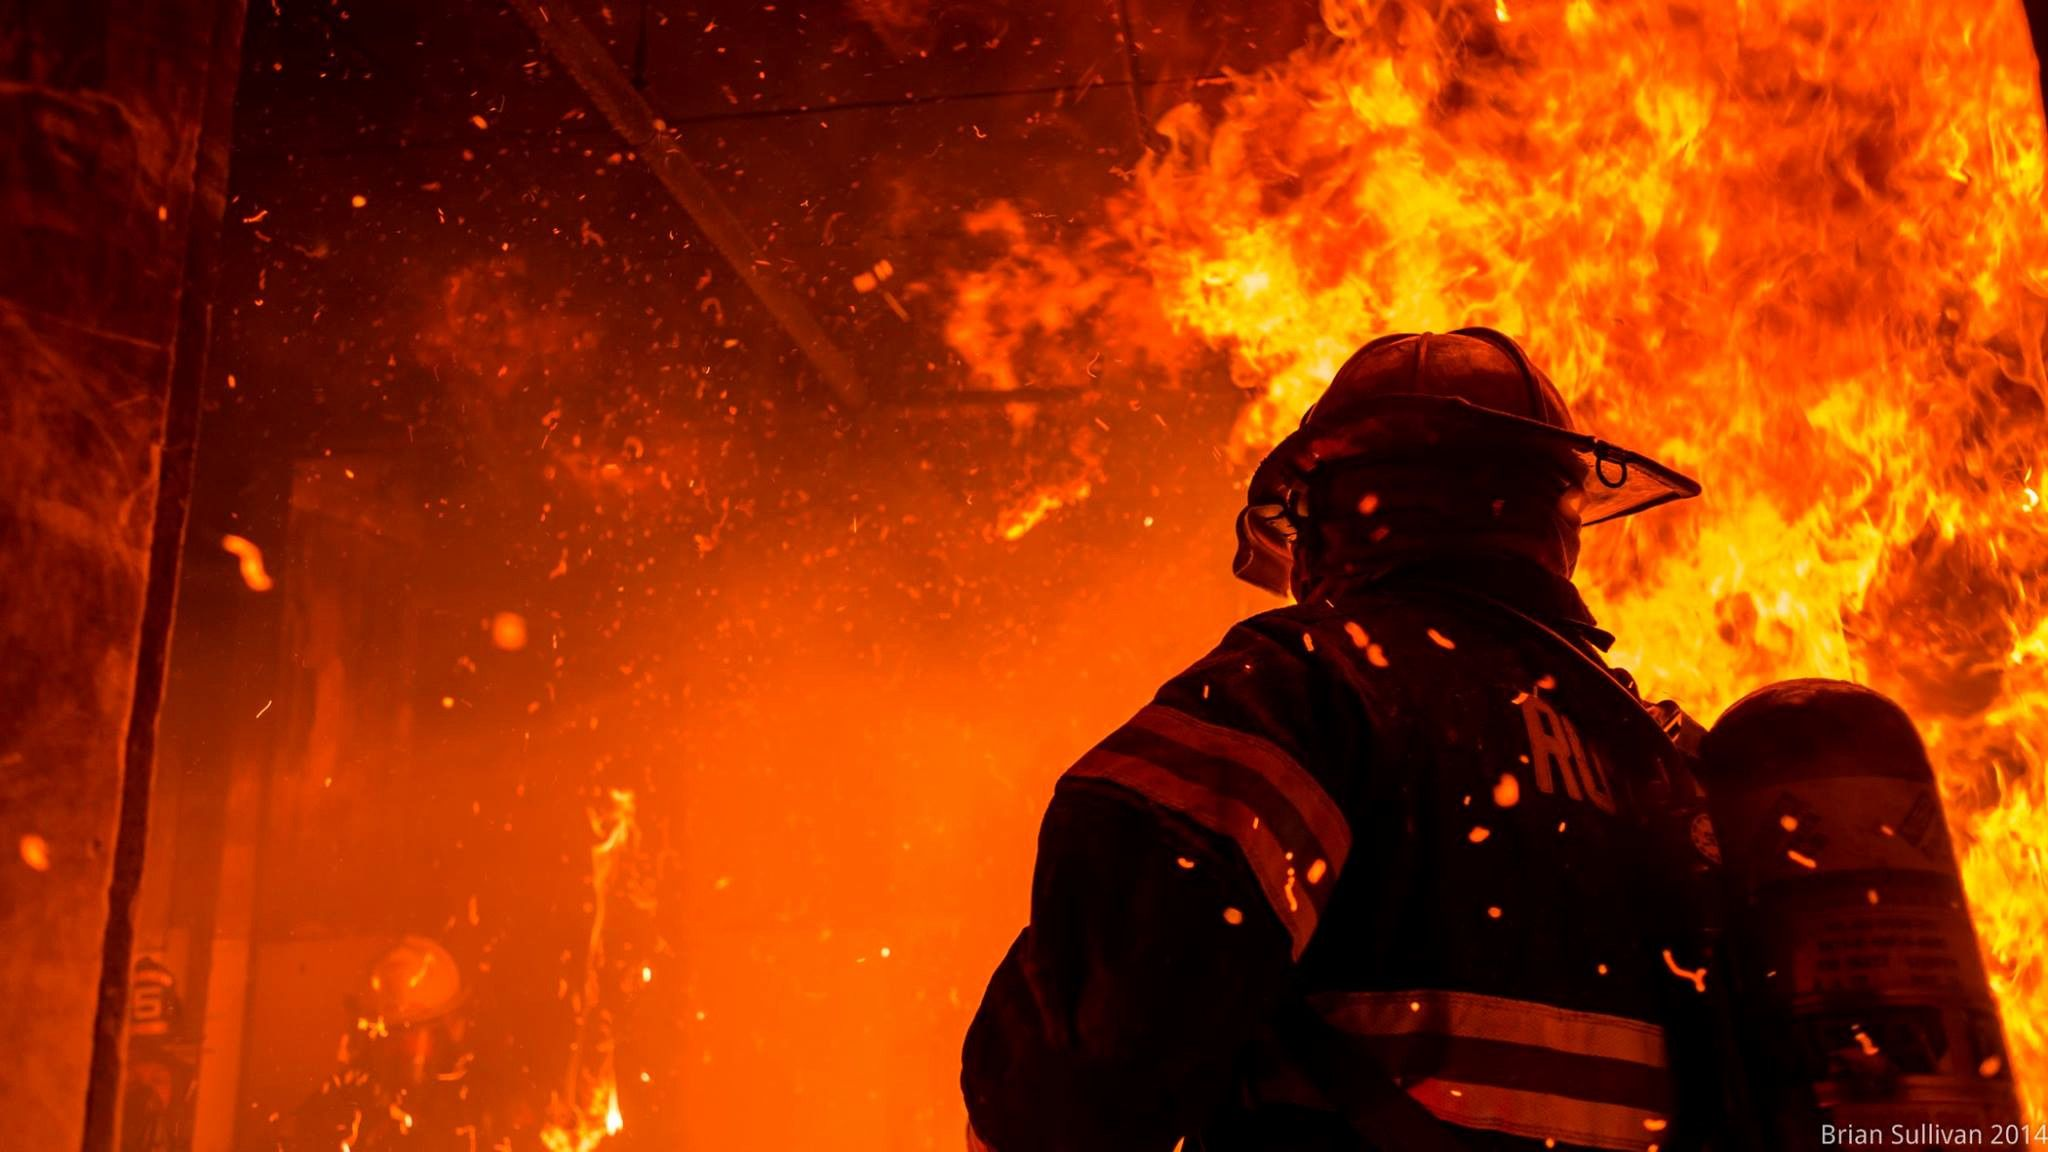 Firefighter Wallpapers   Top Firefighter Backgrounds 2048x1152